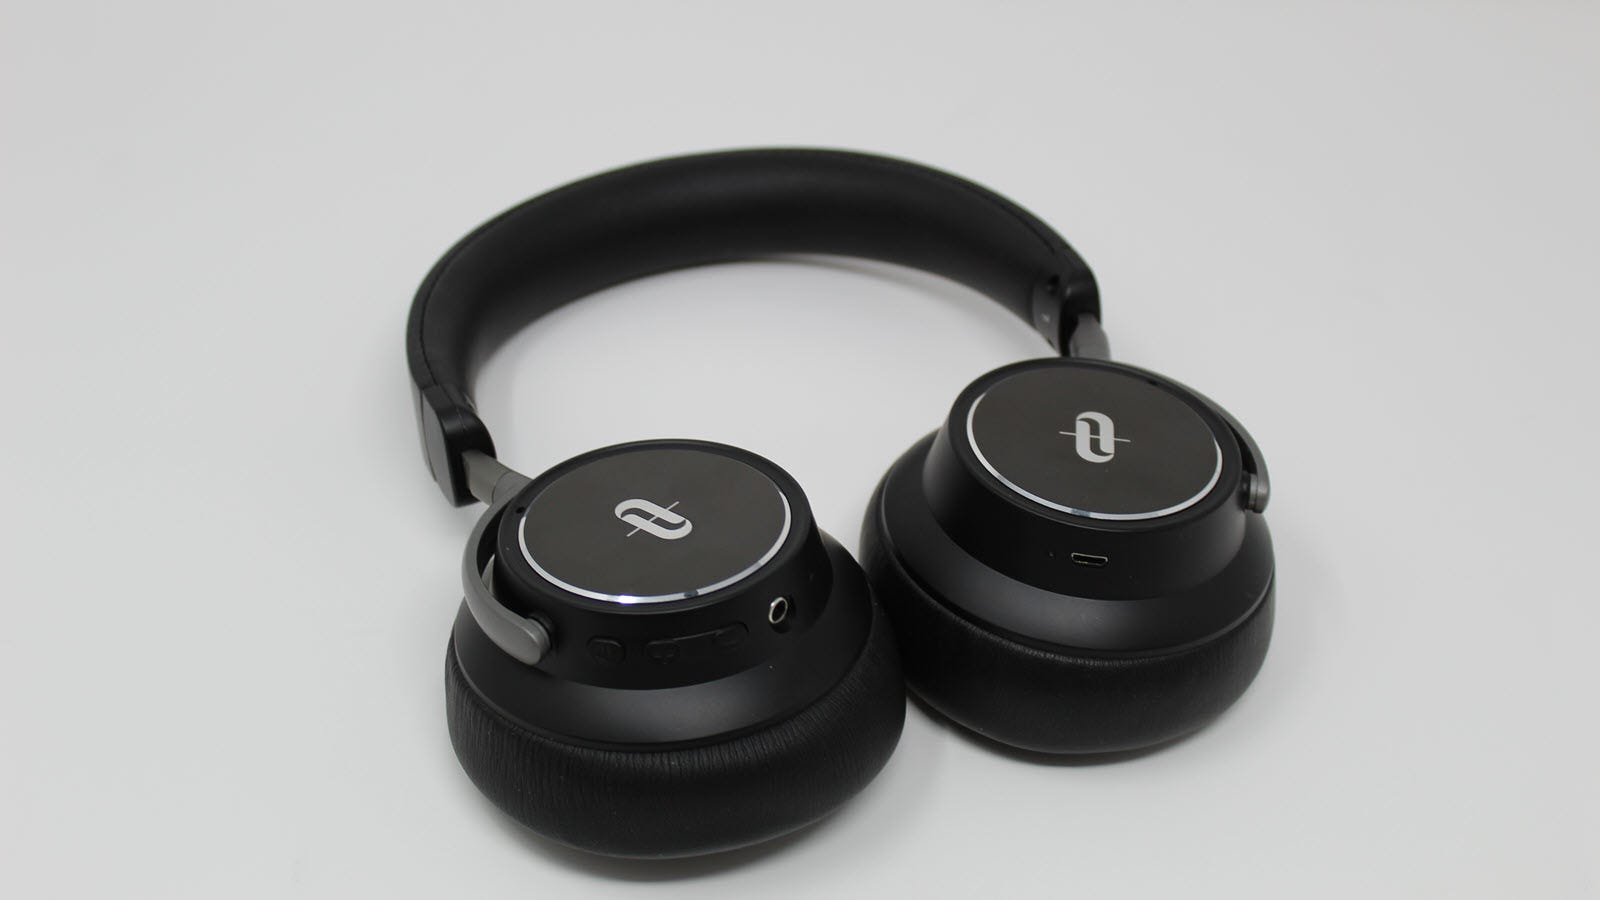 A pair of Taotronics ANC headphones with volume up, down, and power button showing.